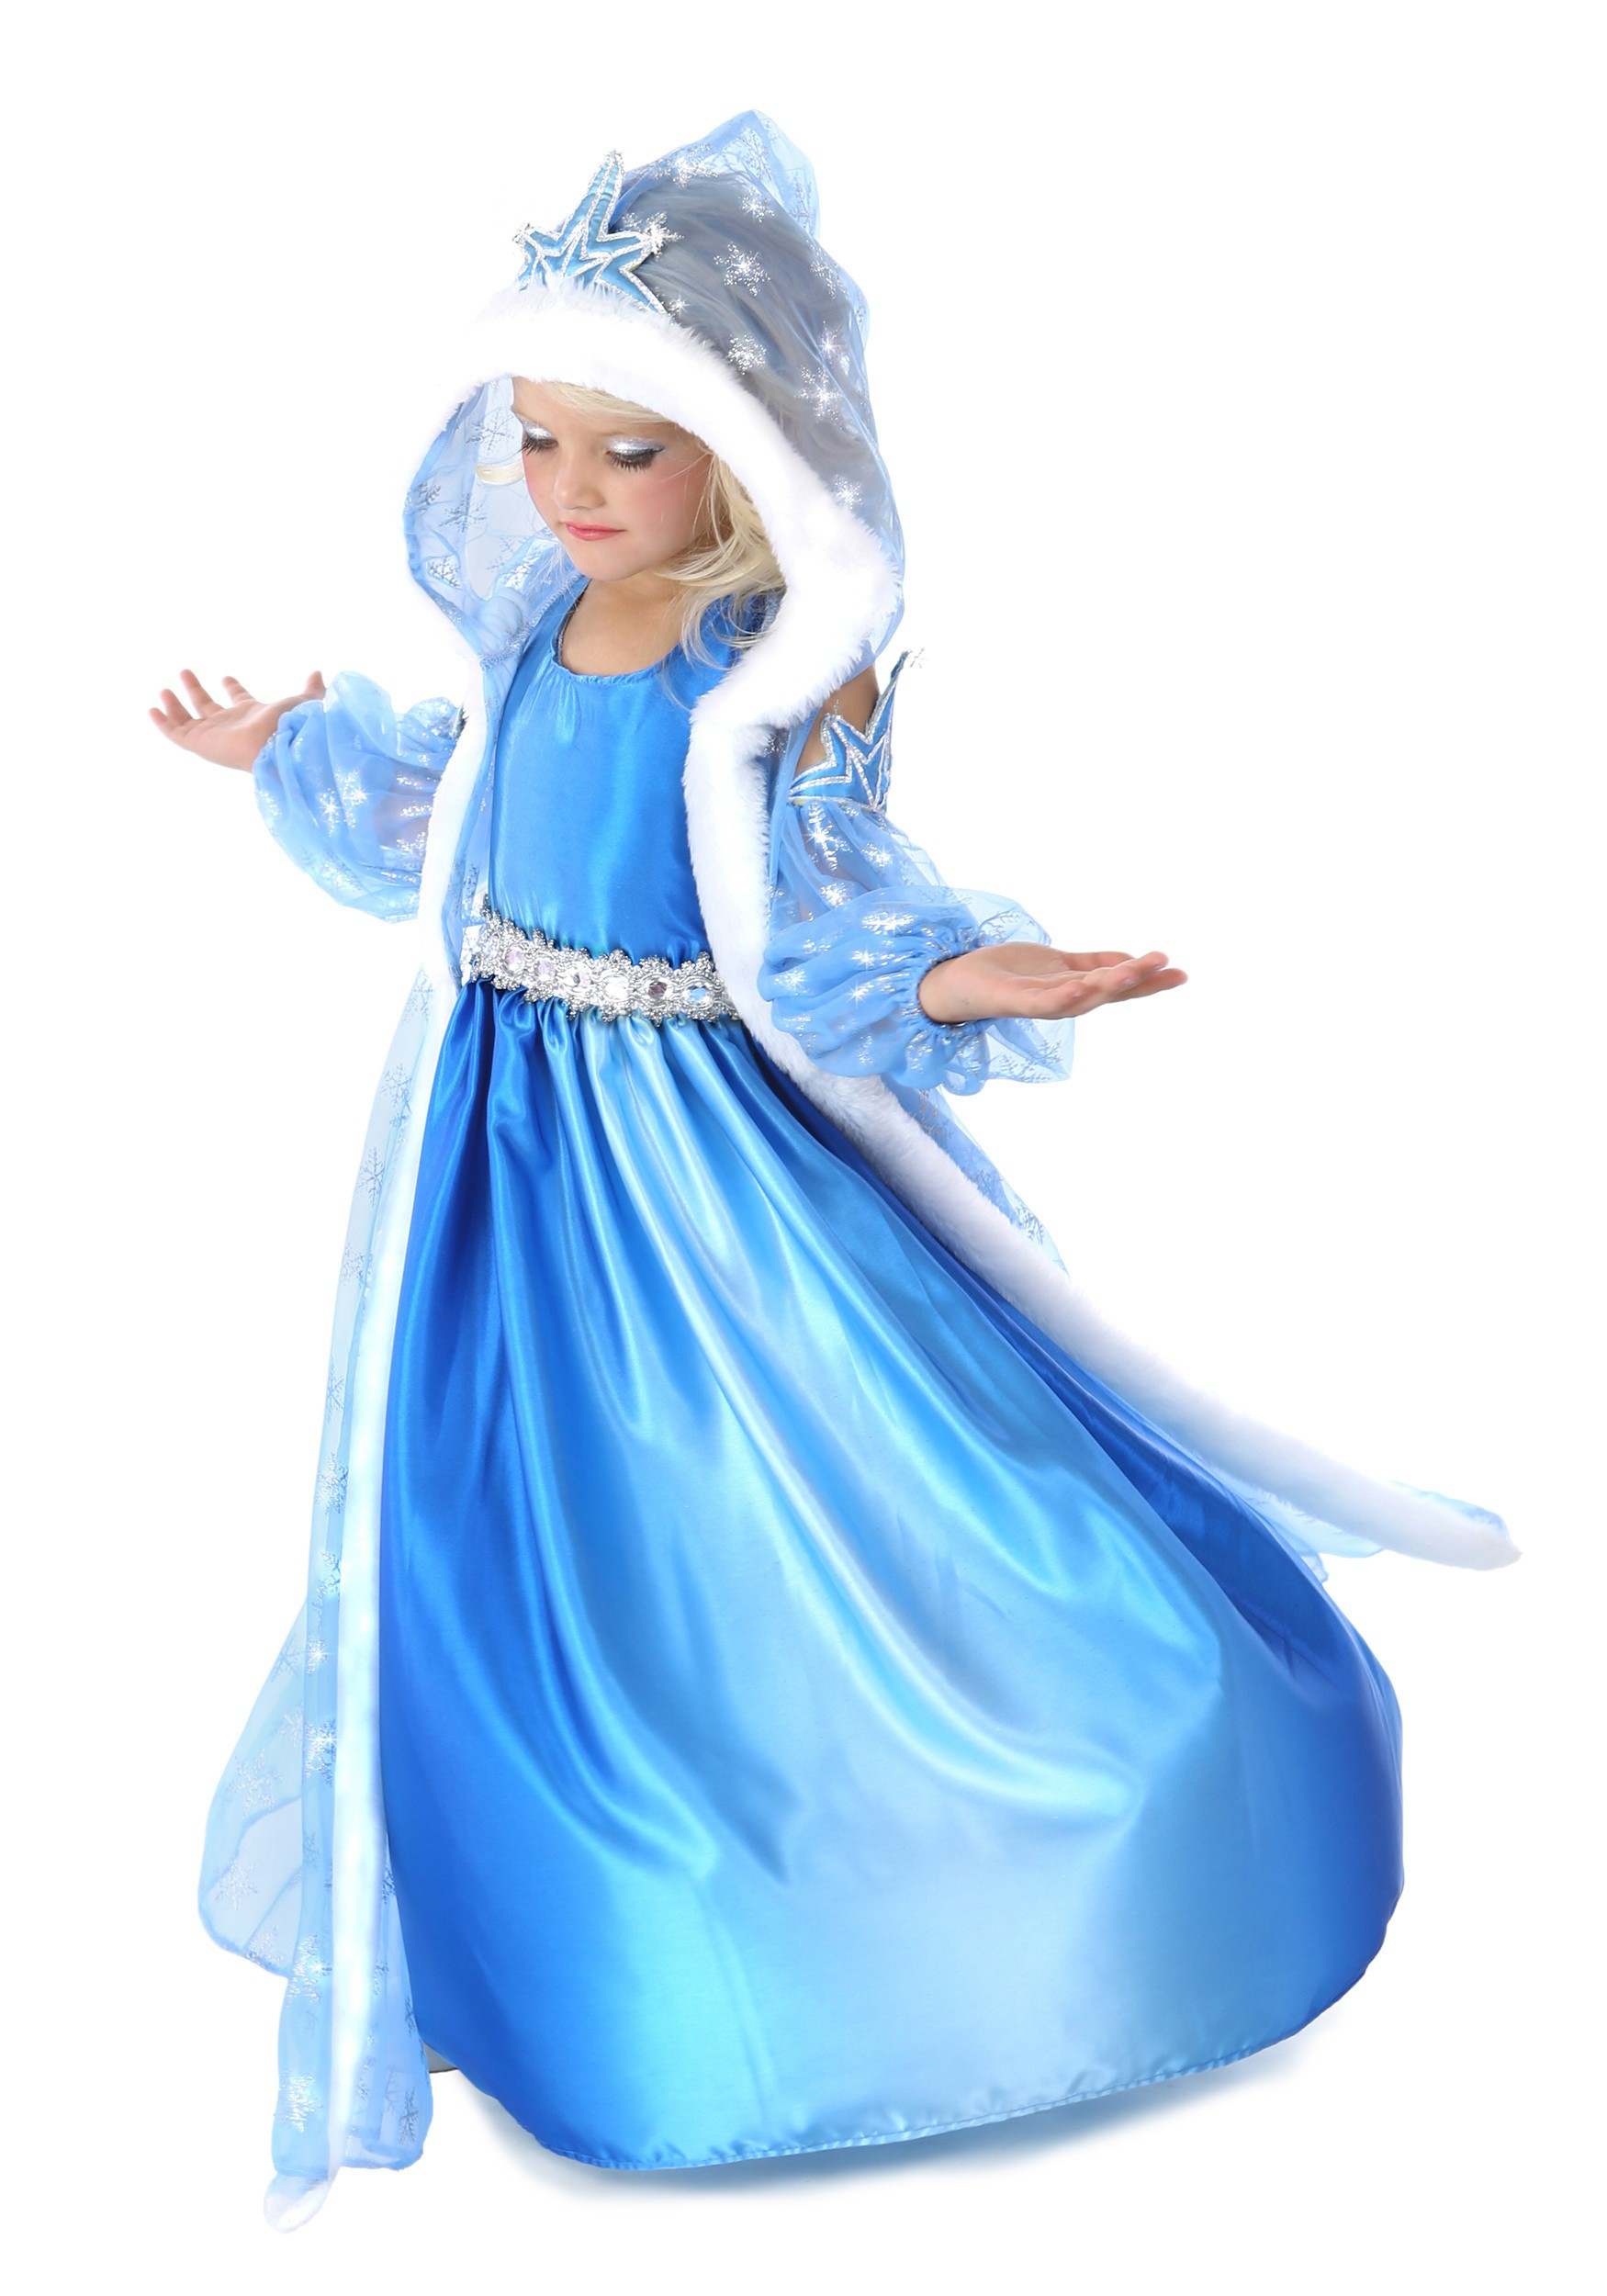 CHILD ICELYN THE WINTER PRINCESS COSTUME snow ice princess girls kids Halloween dress up includes Dress Hooded Jacket Pair of Arm Warmers